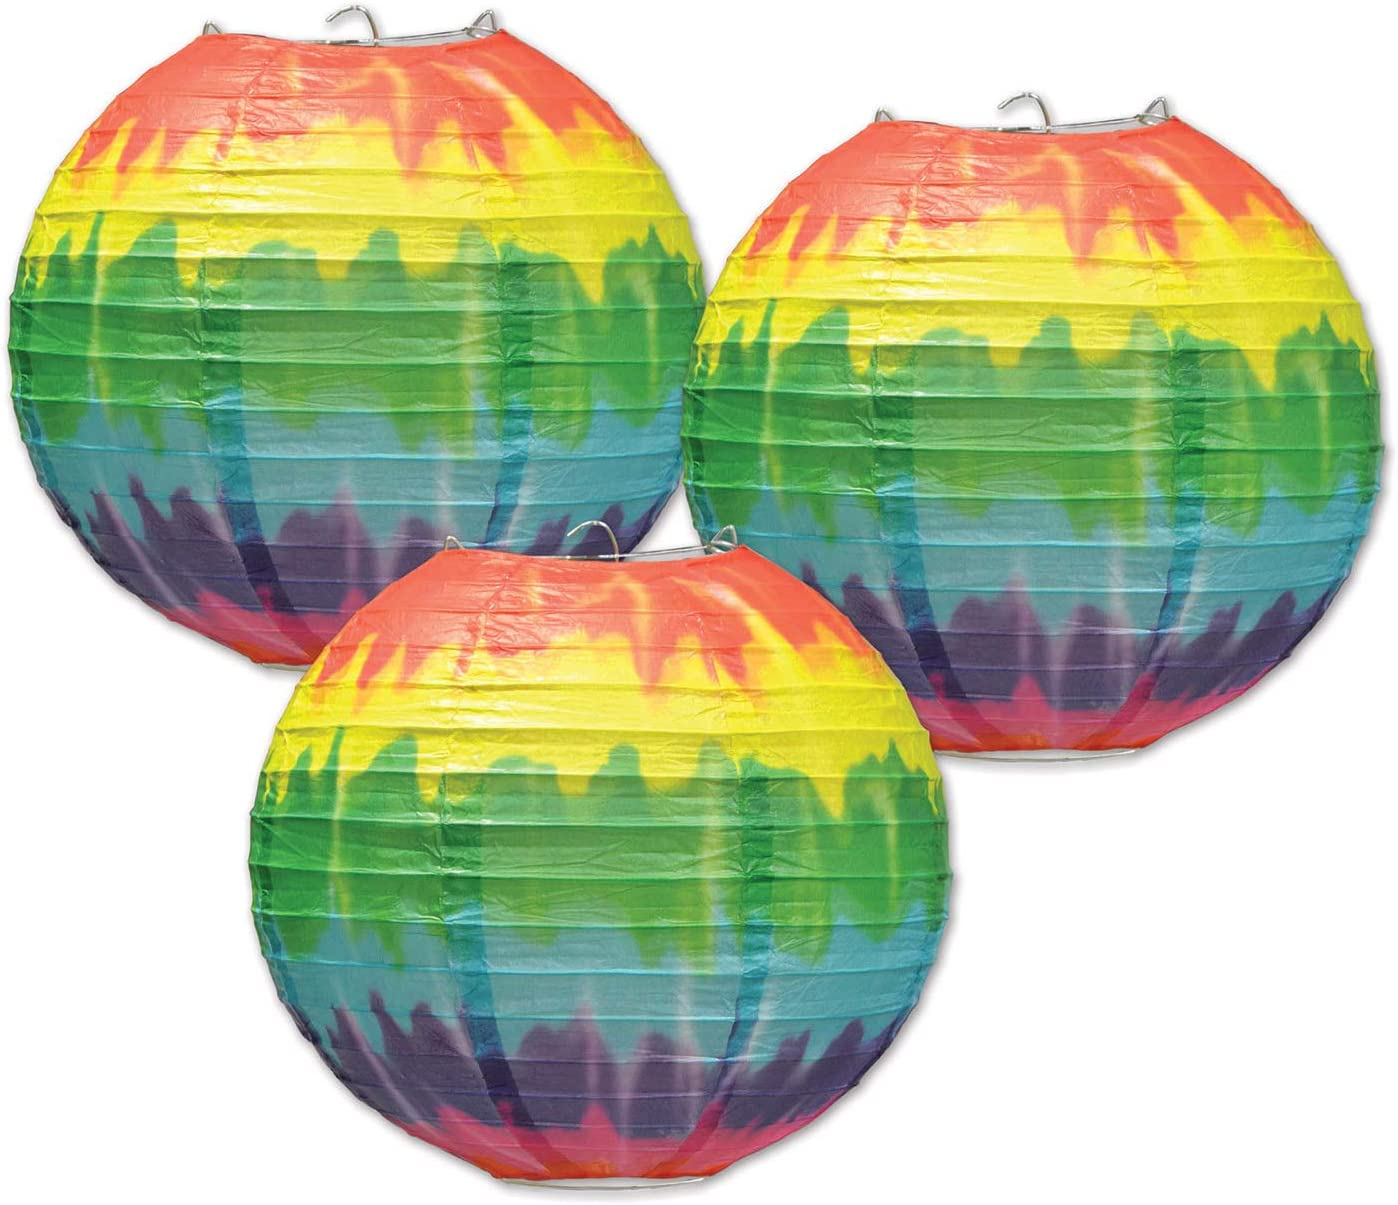 """Beistle Tie Dyed Groovy Paper Lanterns 3 Piece 60's Theme Party 1960's Peace Love Happinenss Hanging Decor Birthday Supplies, 9.5"""", Multicolored"""